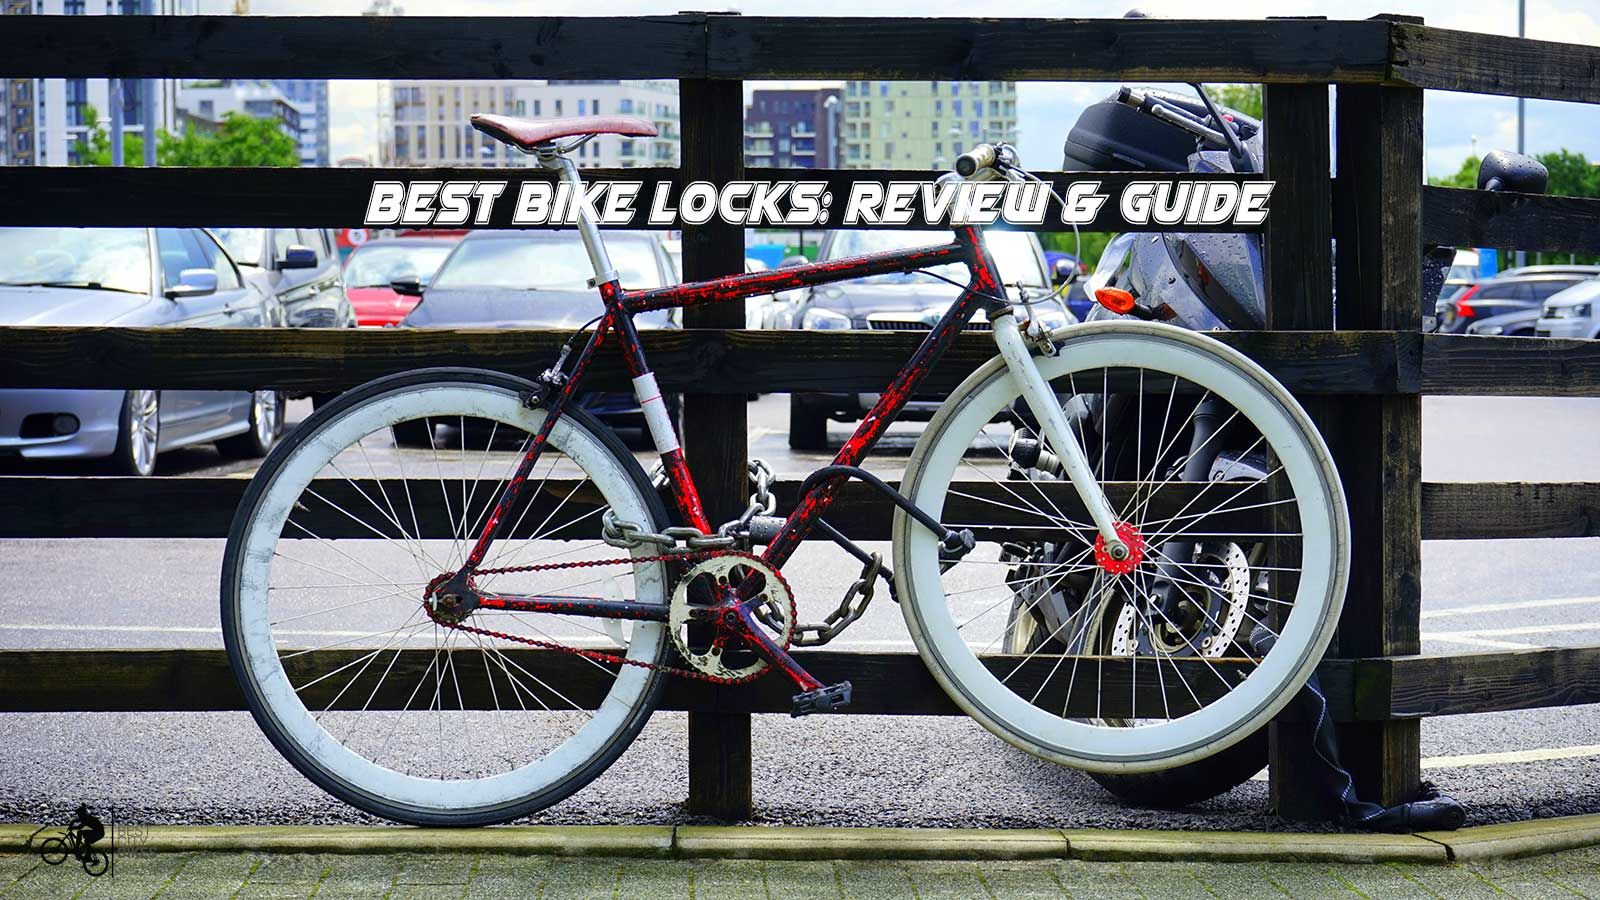 Best City Bike Guide Reviews For 2019 Under 100 200 300